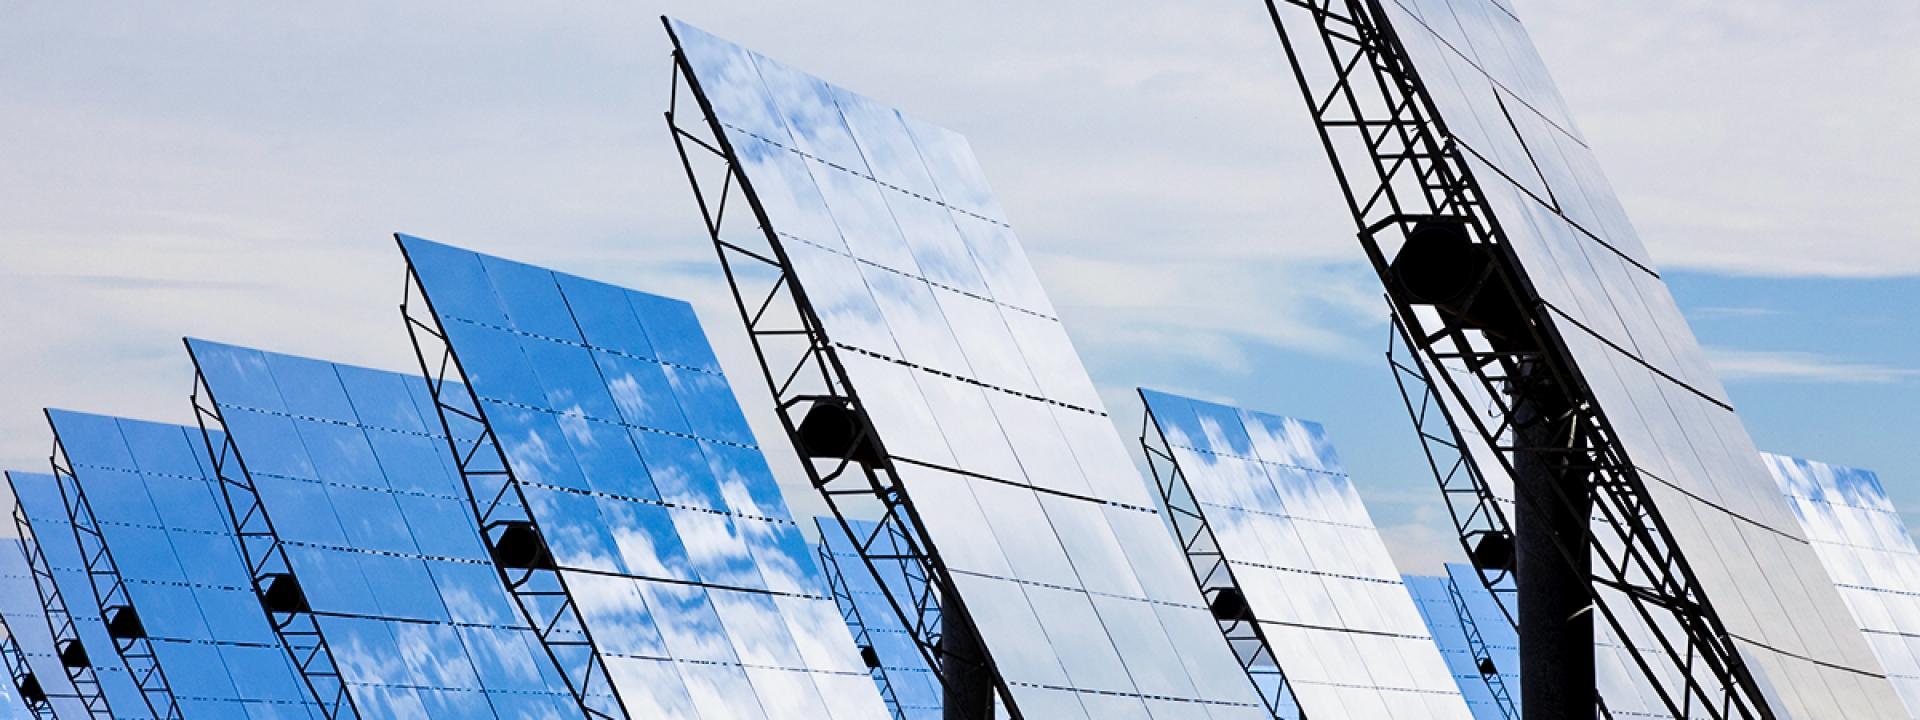 AGC Concentrating solar power